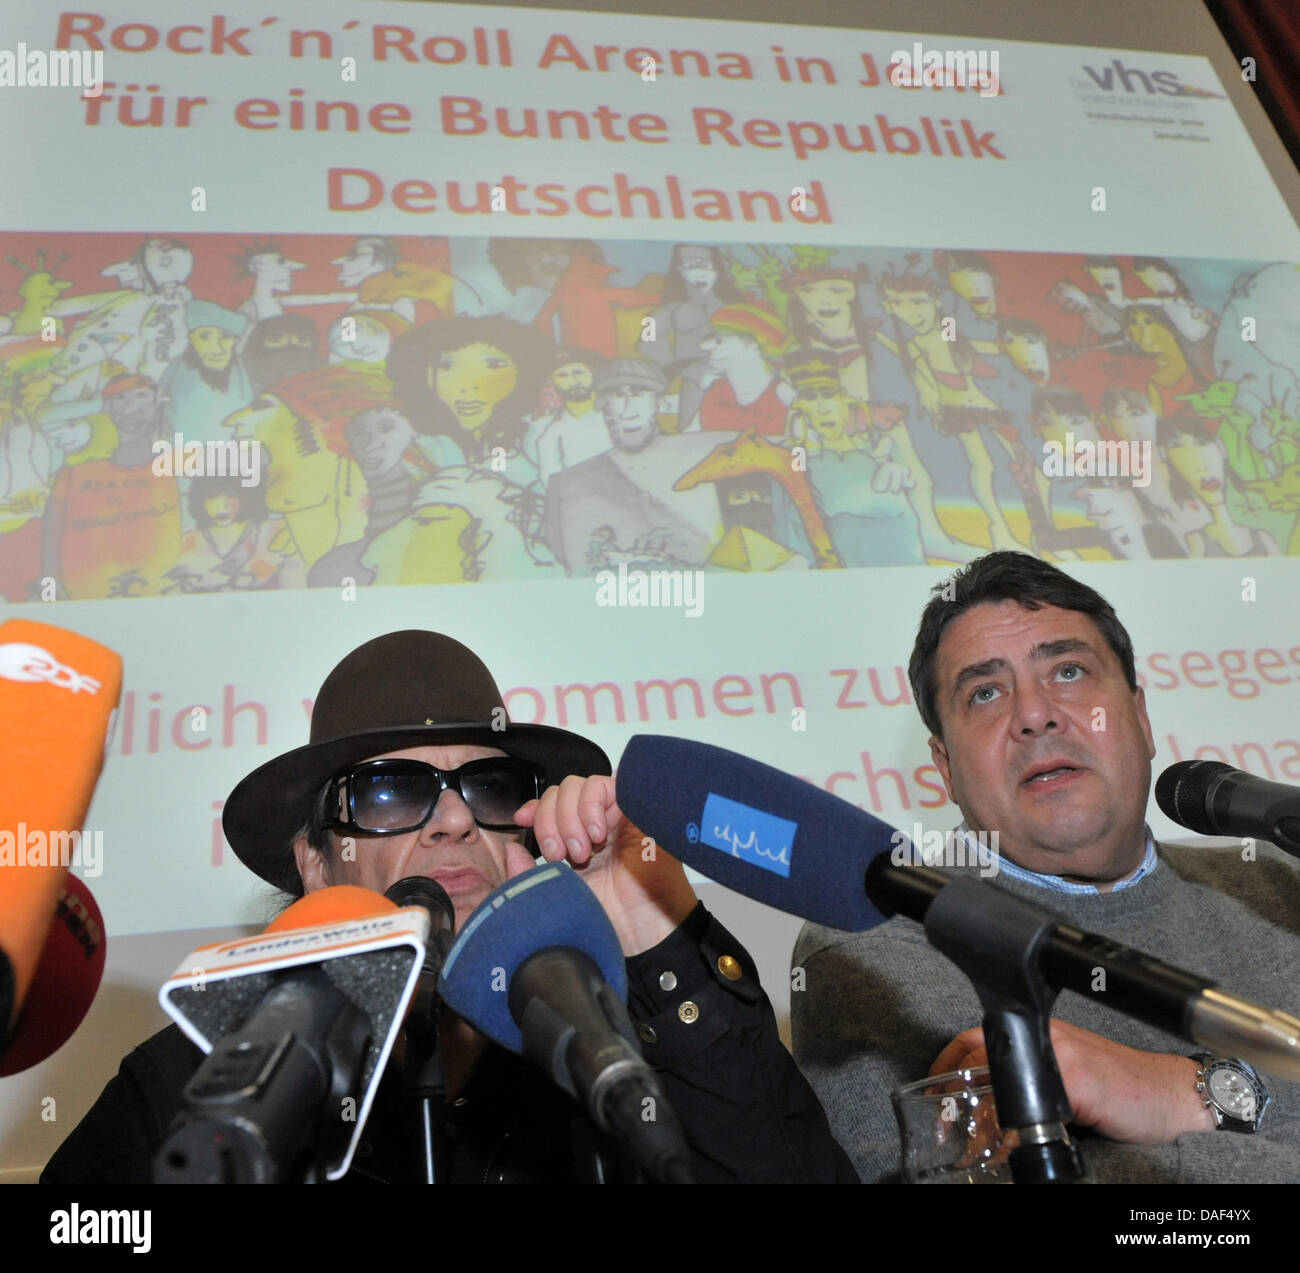 Musician Udo Lindenberg and SPDchair Sigmar Gabriel stand during a press conference in Jena, Germany, 02 December Stock Photo